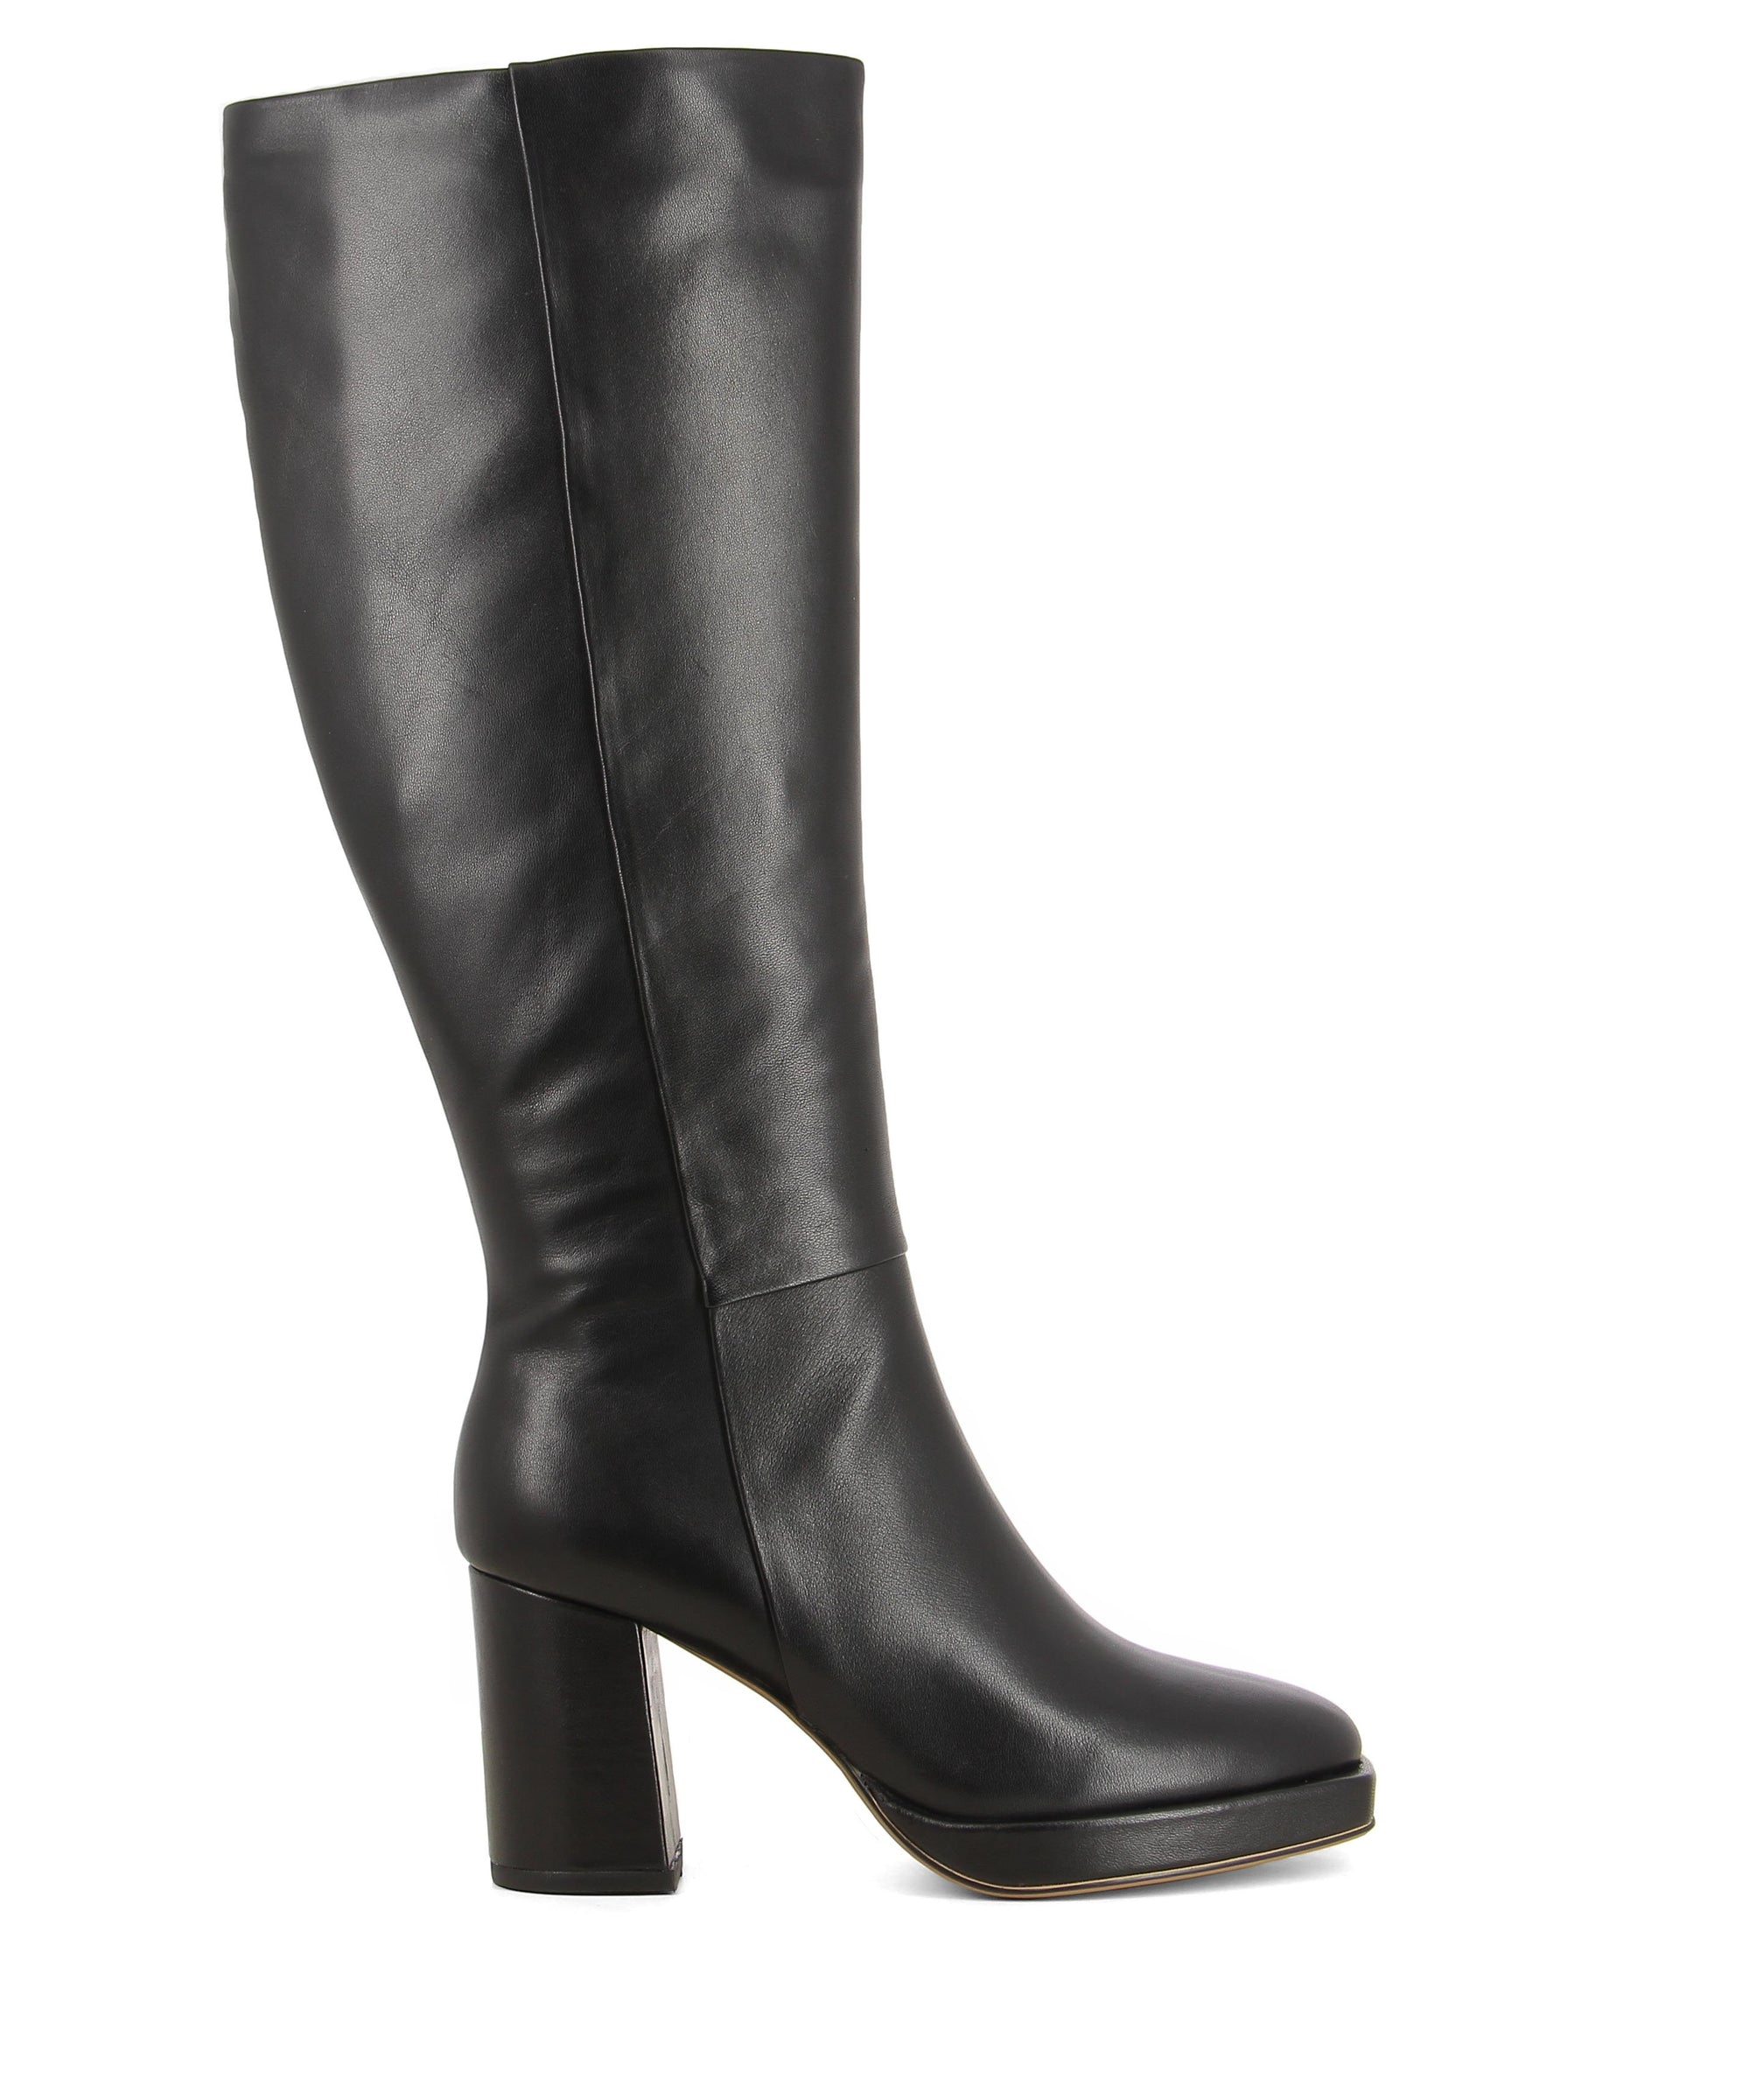 Black leather knee high boots featuring a zipper fastening, a platform sole, a high block heel and an almond toe on a square rand by 2 Baia Vista.